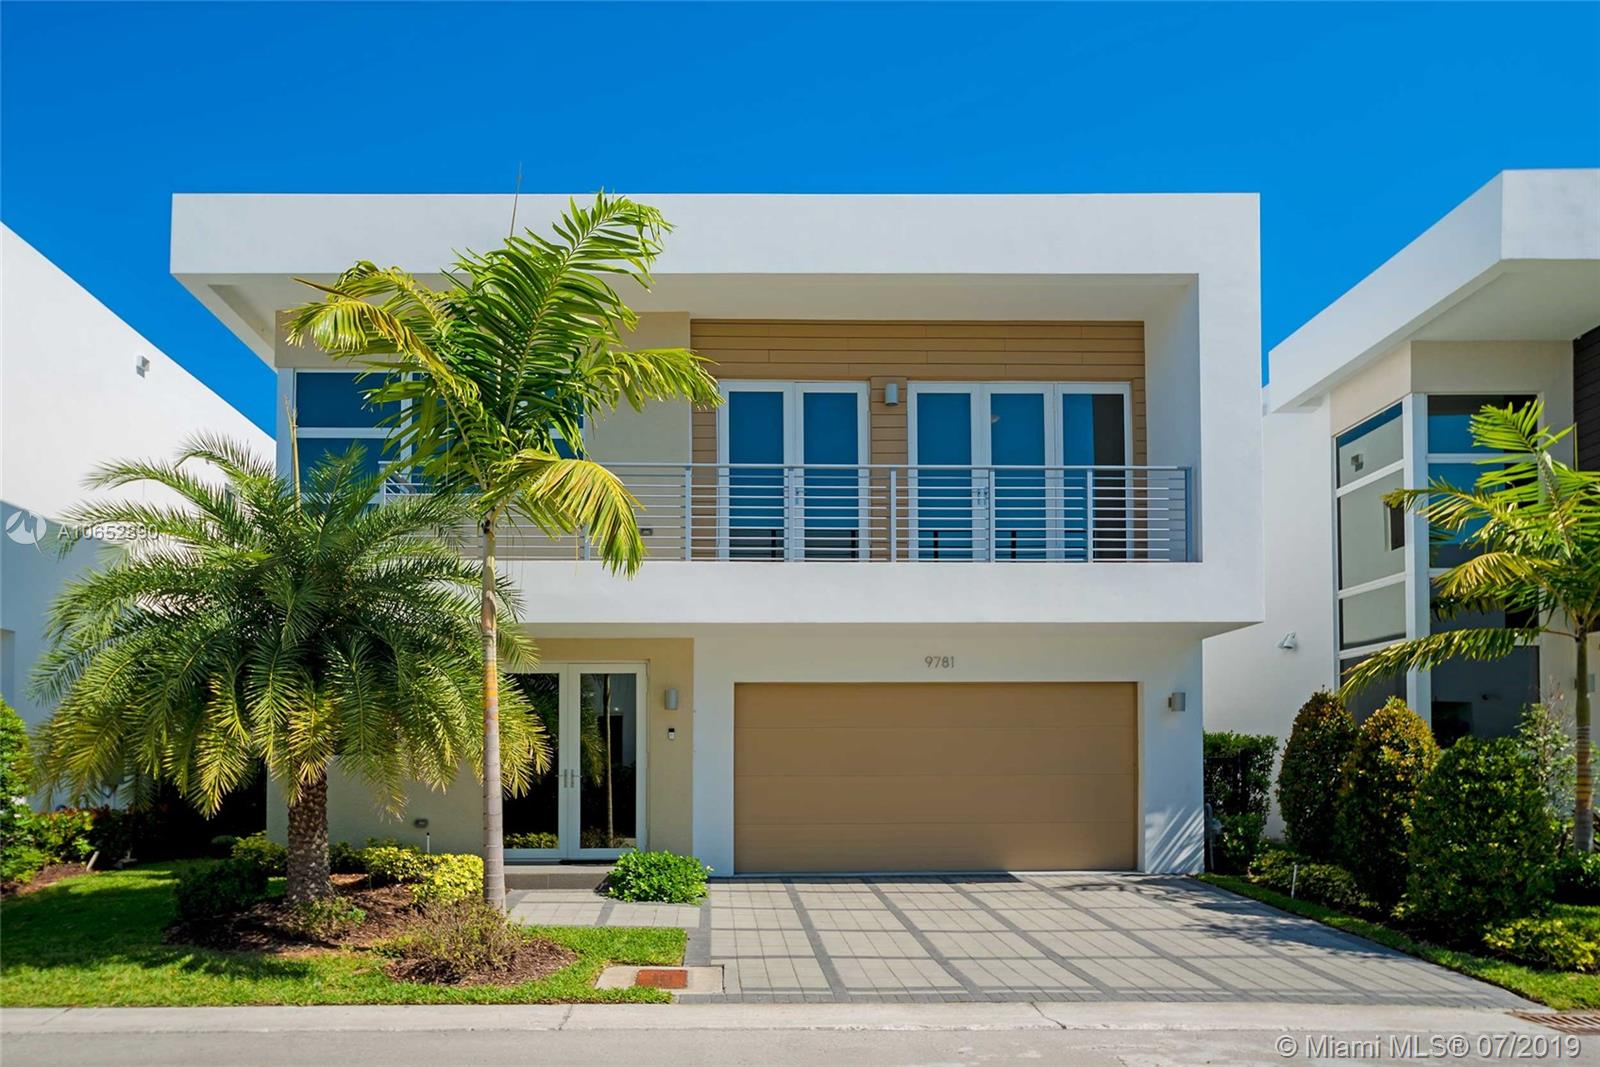 One of Doral 5 Bedroom Homes for Sale at 9781 NW 75th Ter